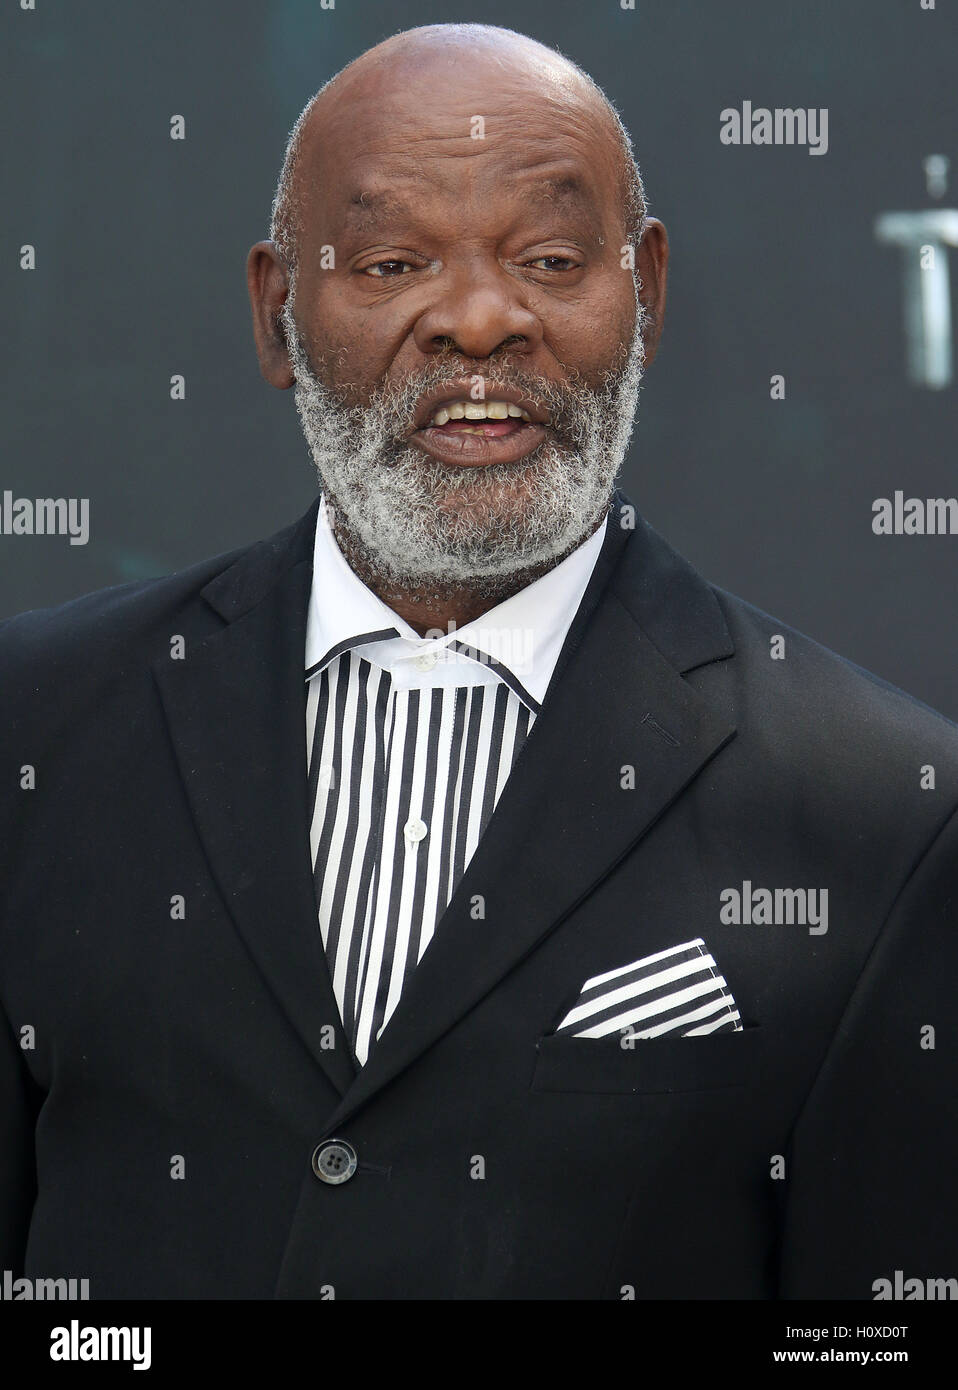 July 5, 2016 - Yule Masiteng attending 'The Legend Of Tarzan' European Premiere at Odeon, Leicester Square - Stock Image